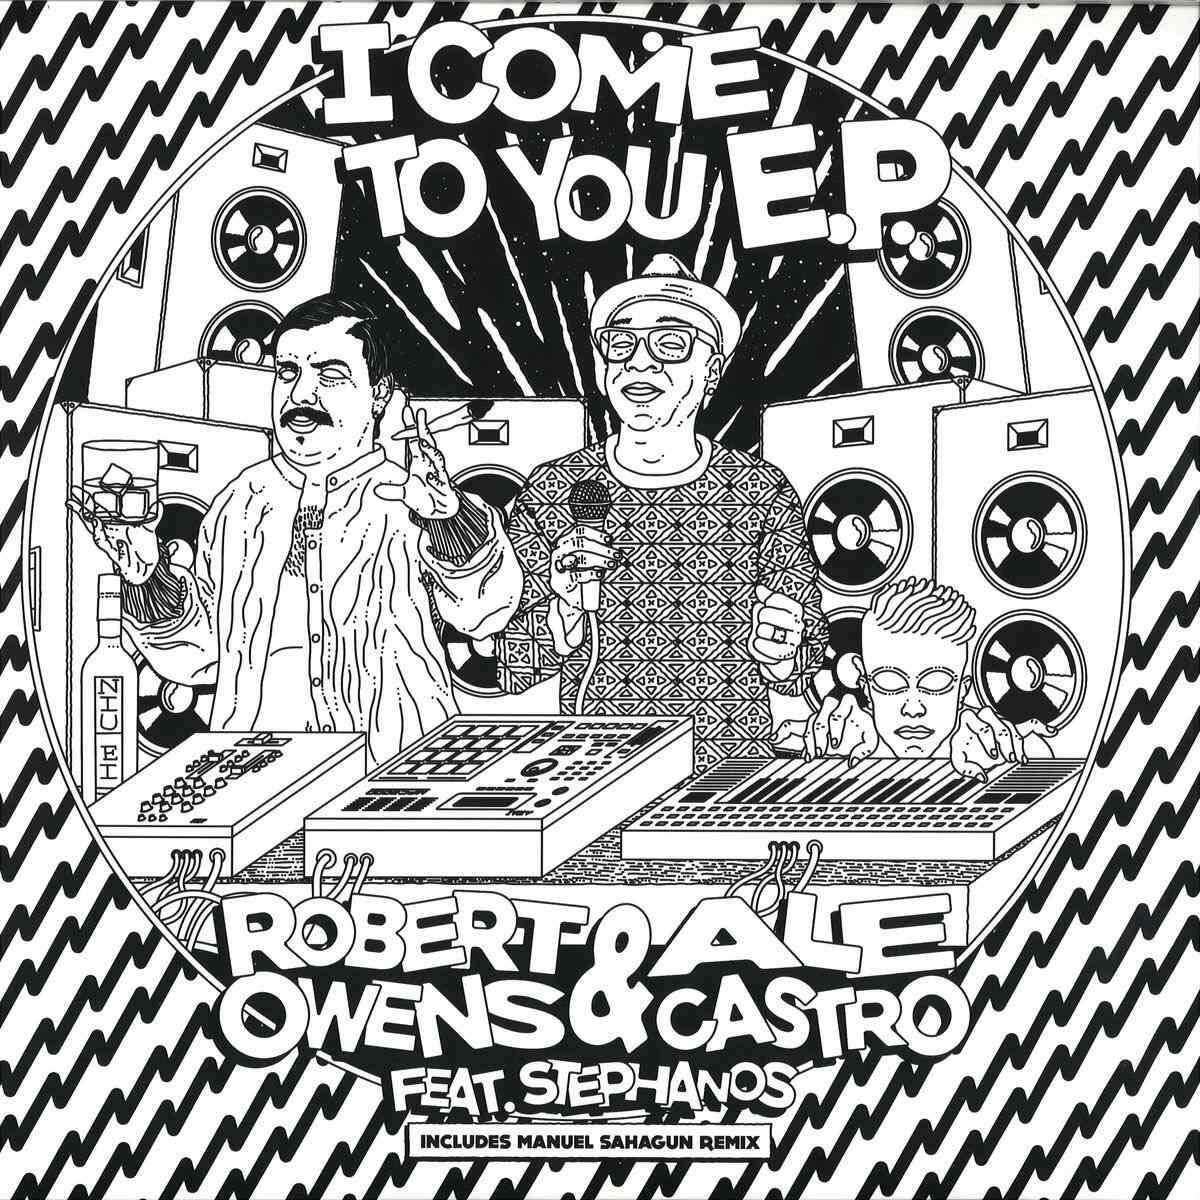 Robert Owens & Ale Castro feat. Stephanos – I Come To You EP (Love & Loops Records)